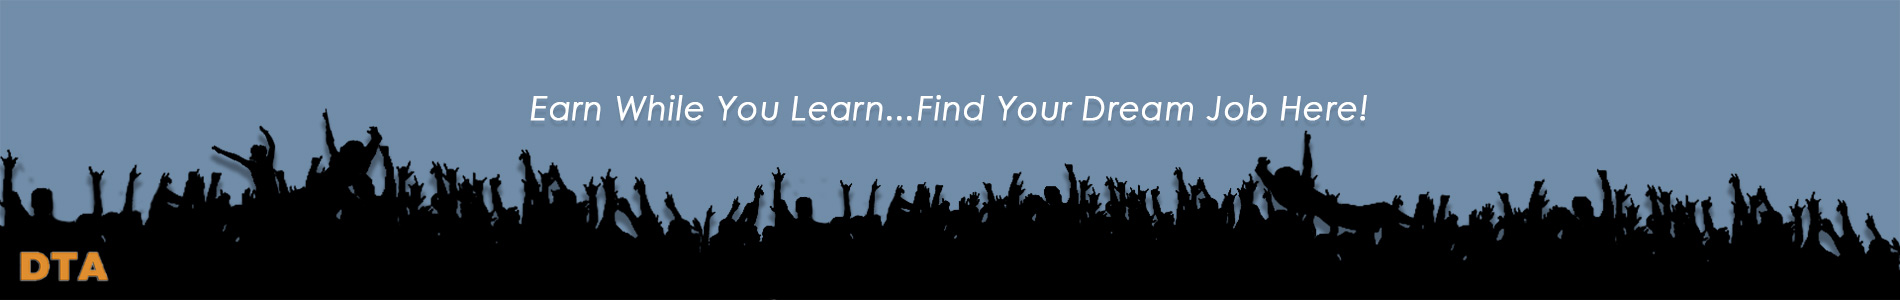 Earn while you learn...find your dream job here